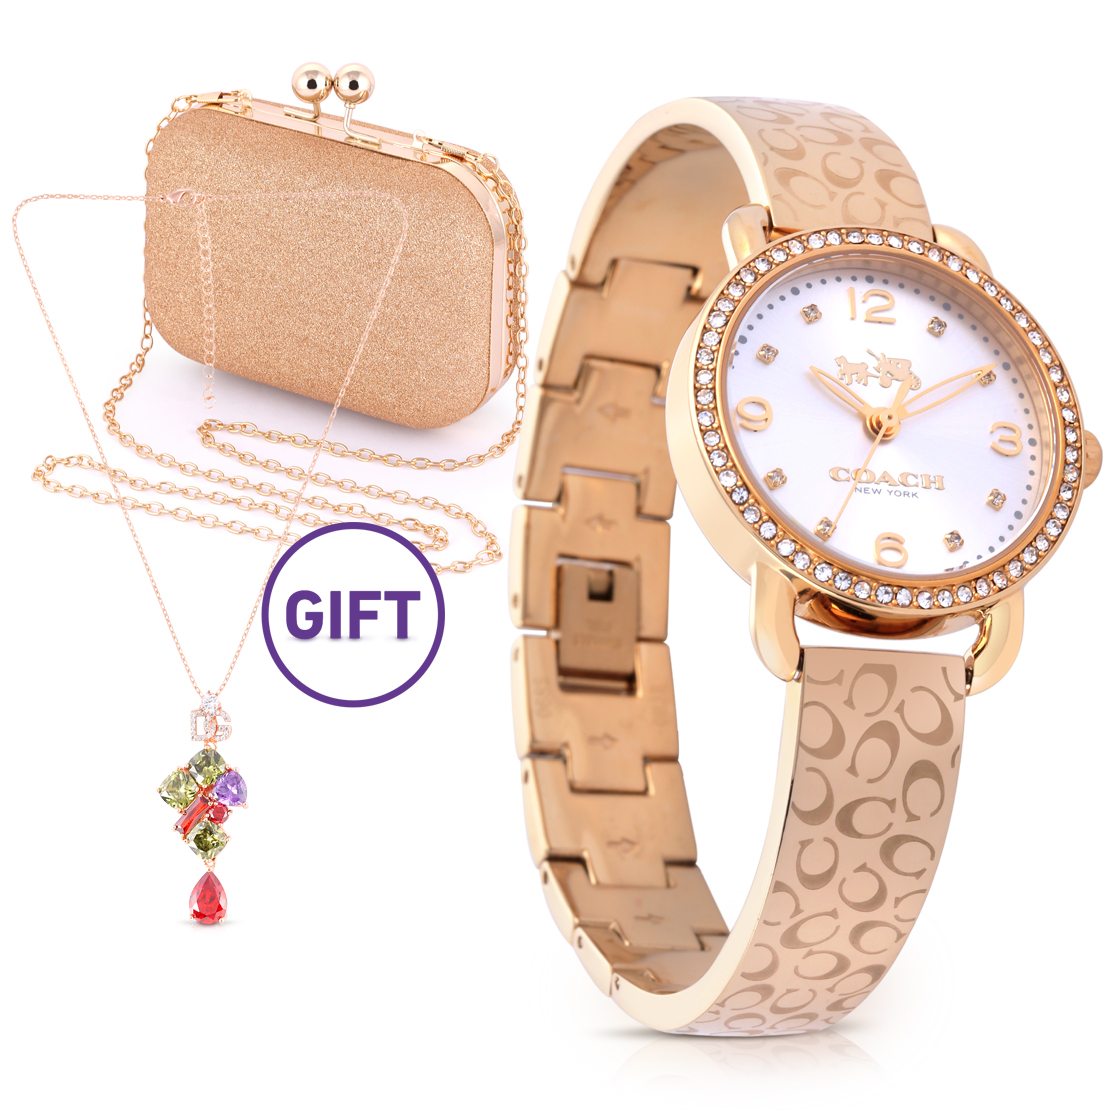 Classic Delancey Wristwatch Collection & Gifts